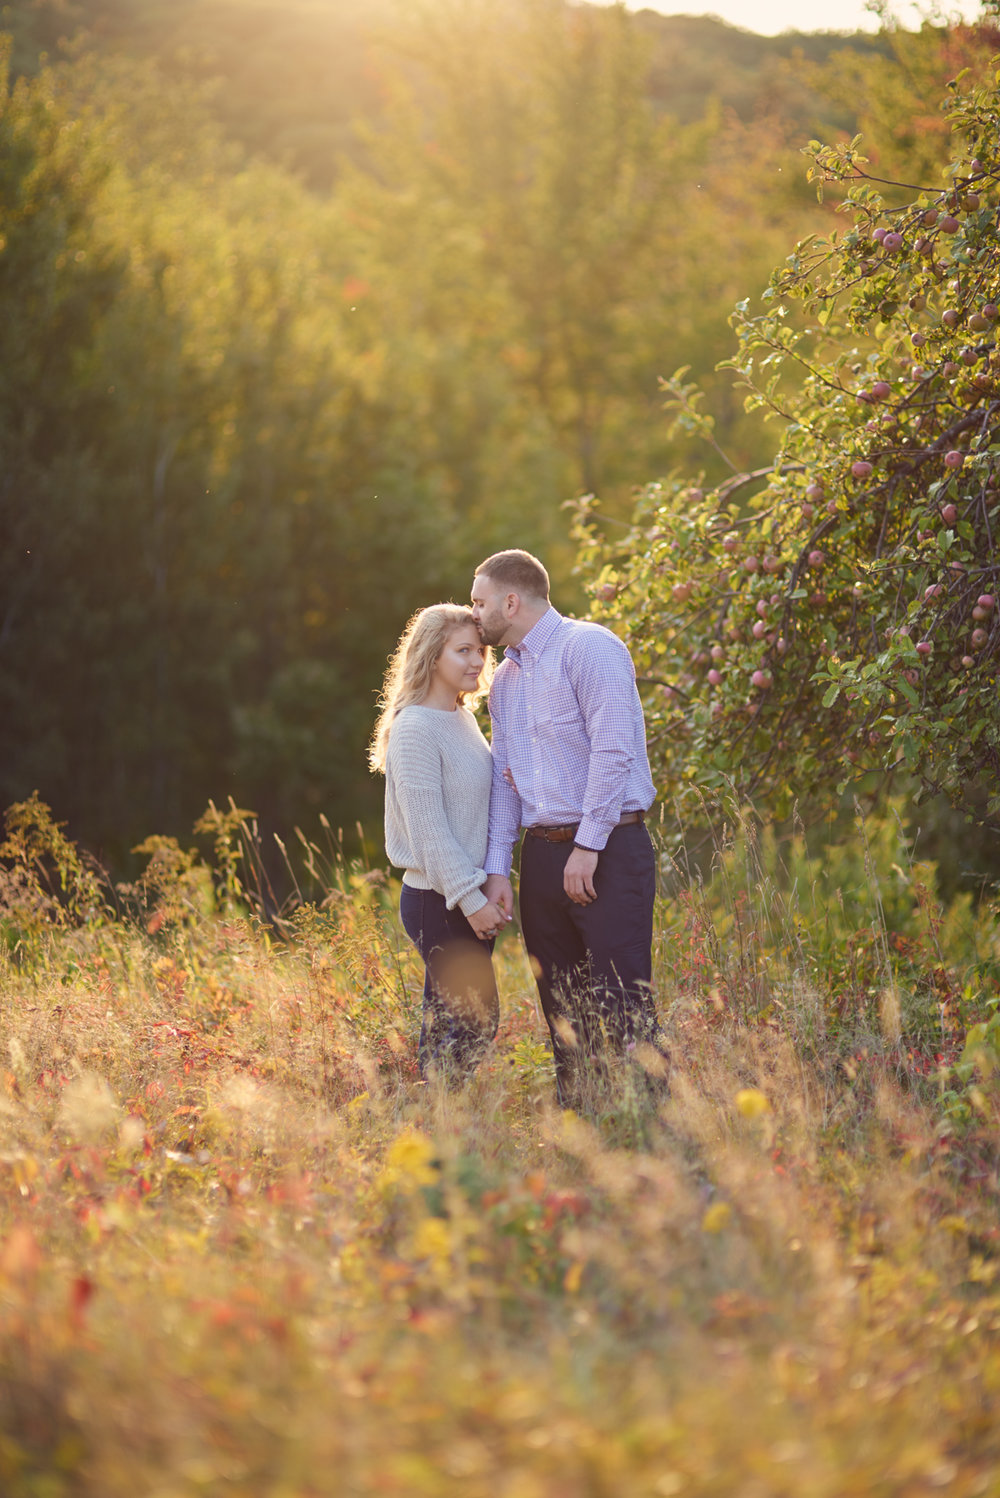 Anesa and Mahlik's Fall sunset engagement session in Meredith, New Hampshire.